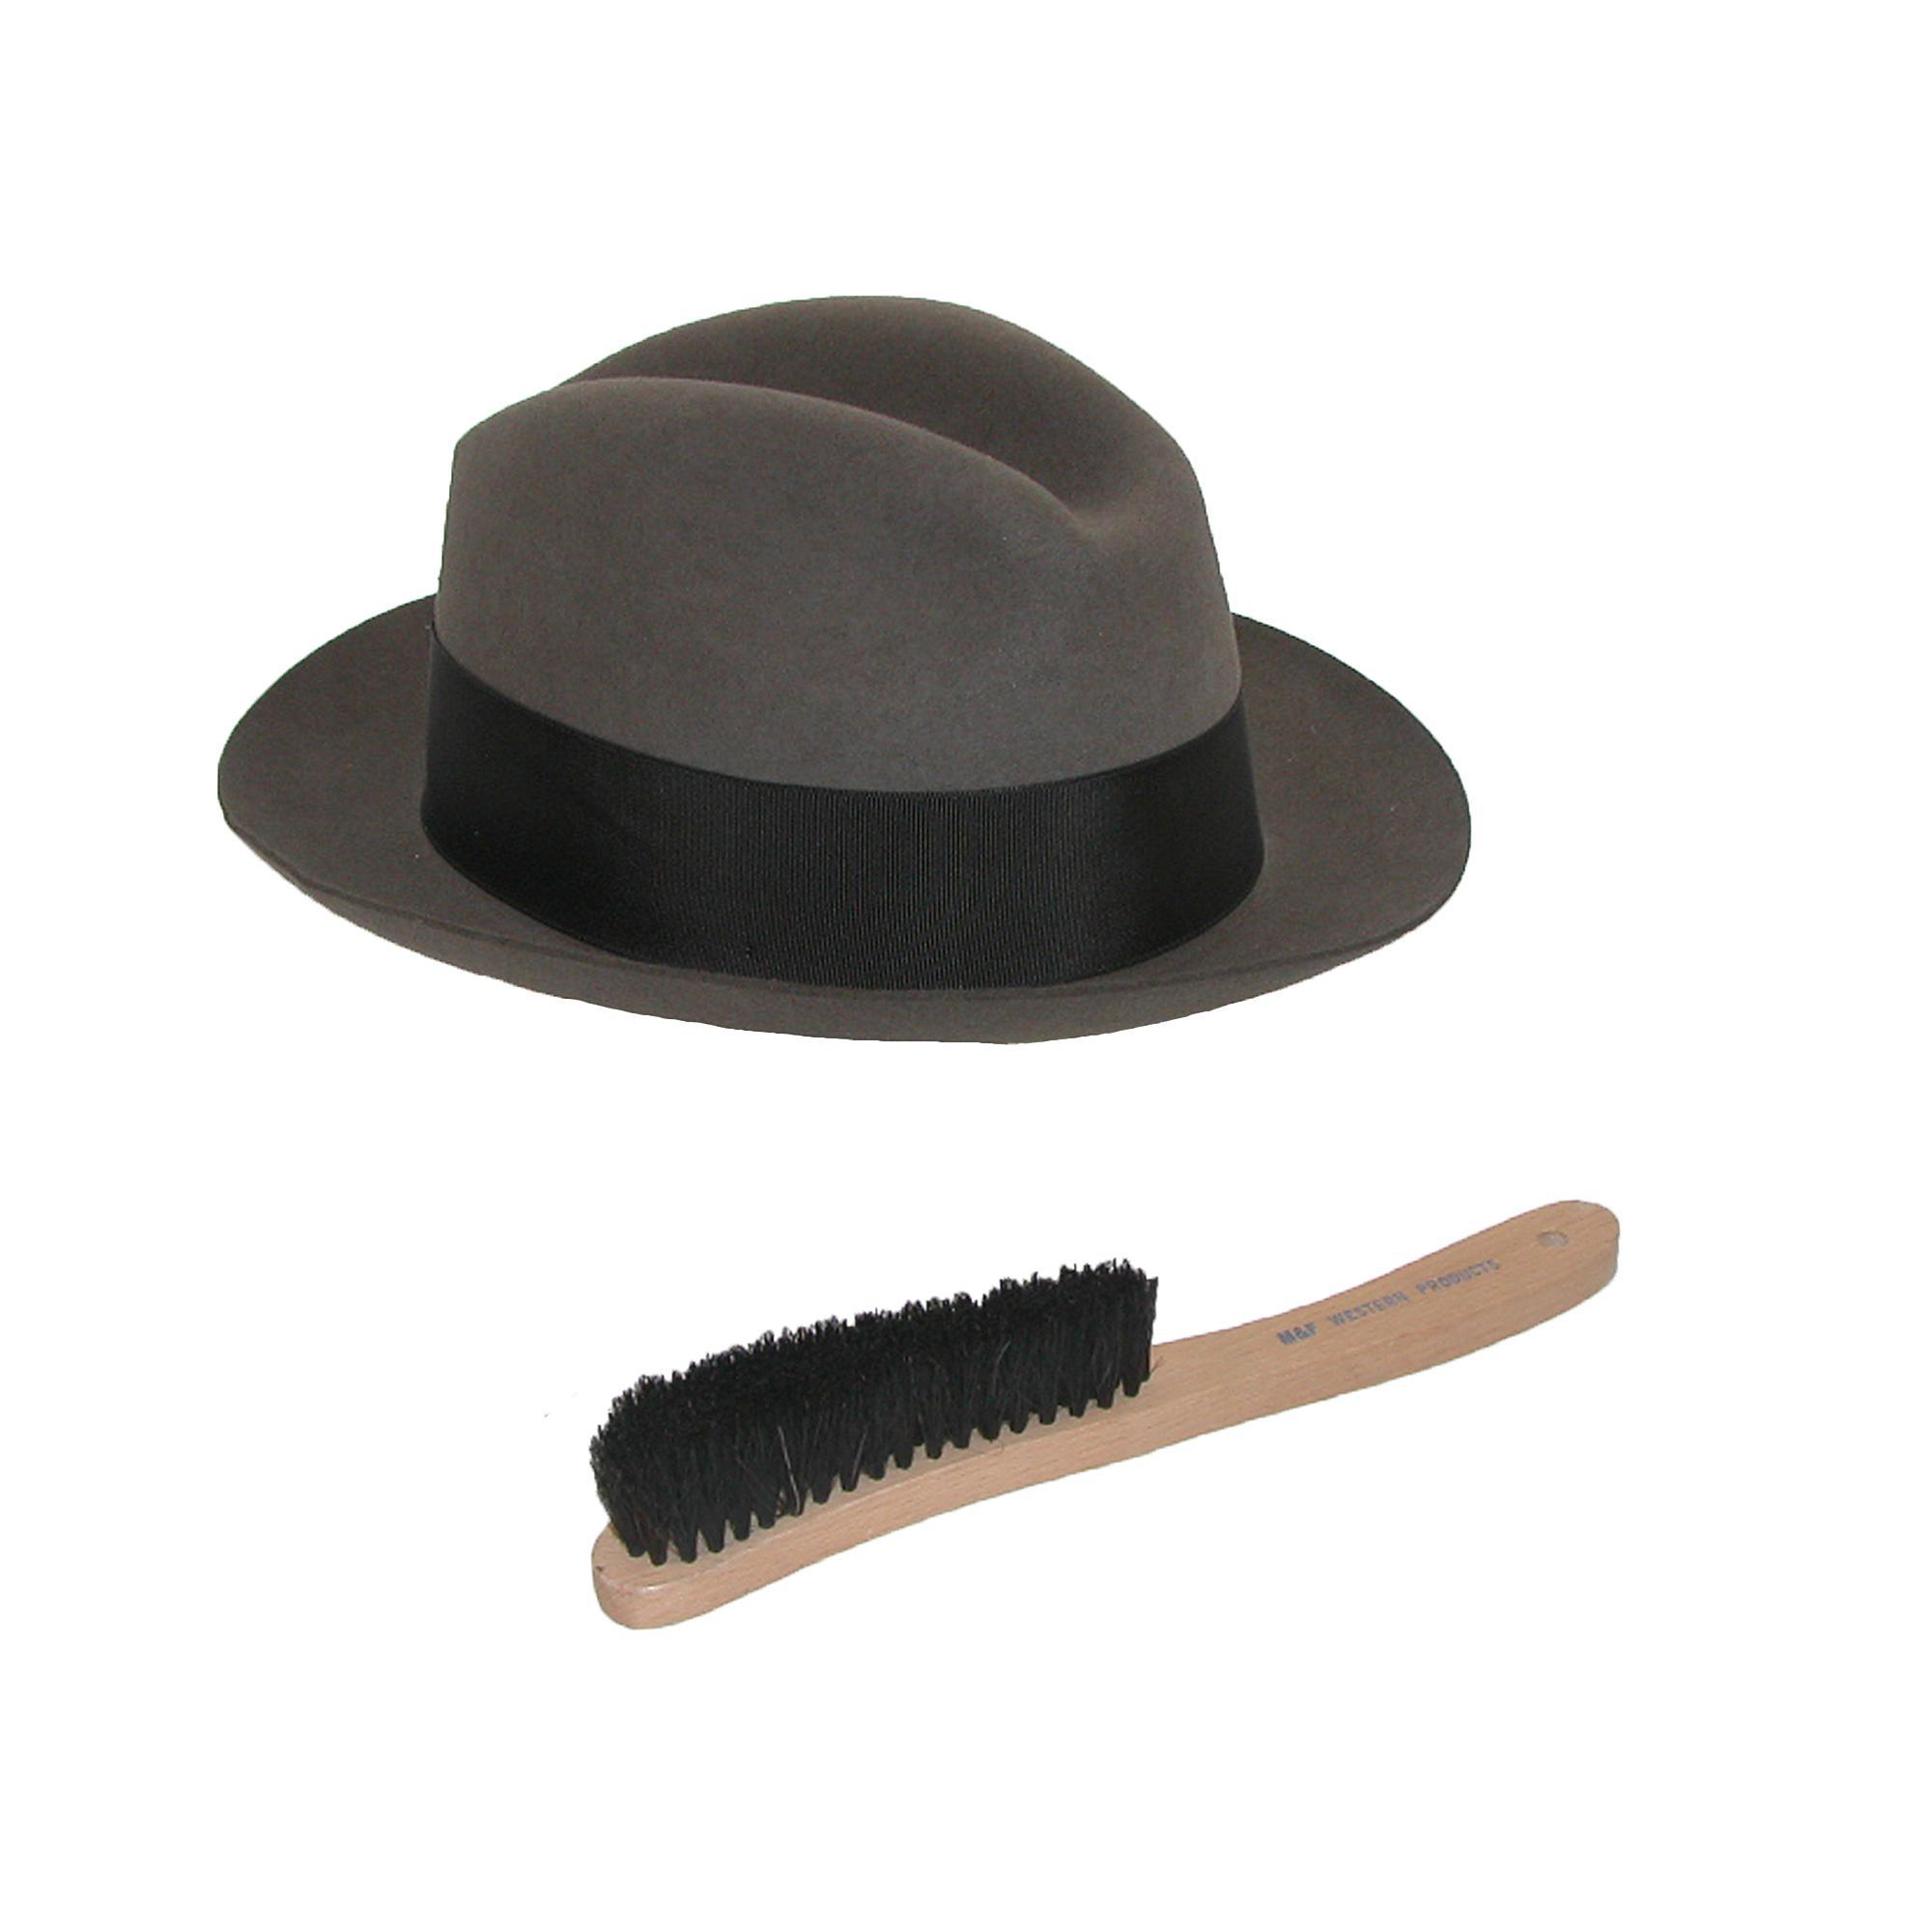 3bff16a6927 New M F Western Products Wooden Handle Wool Hat Brush 701340000957 ...